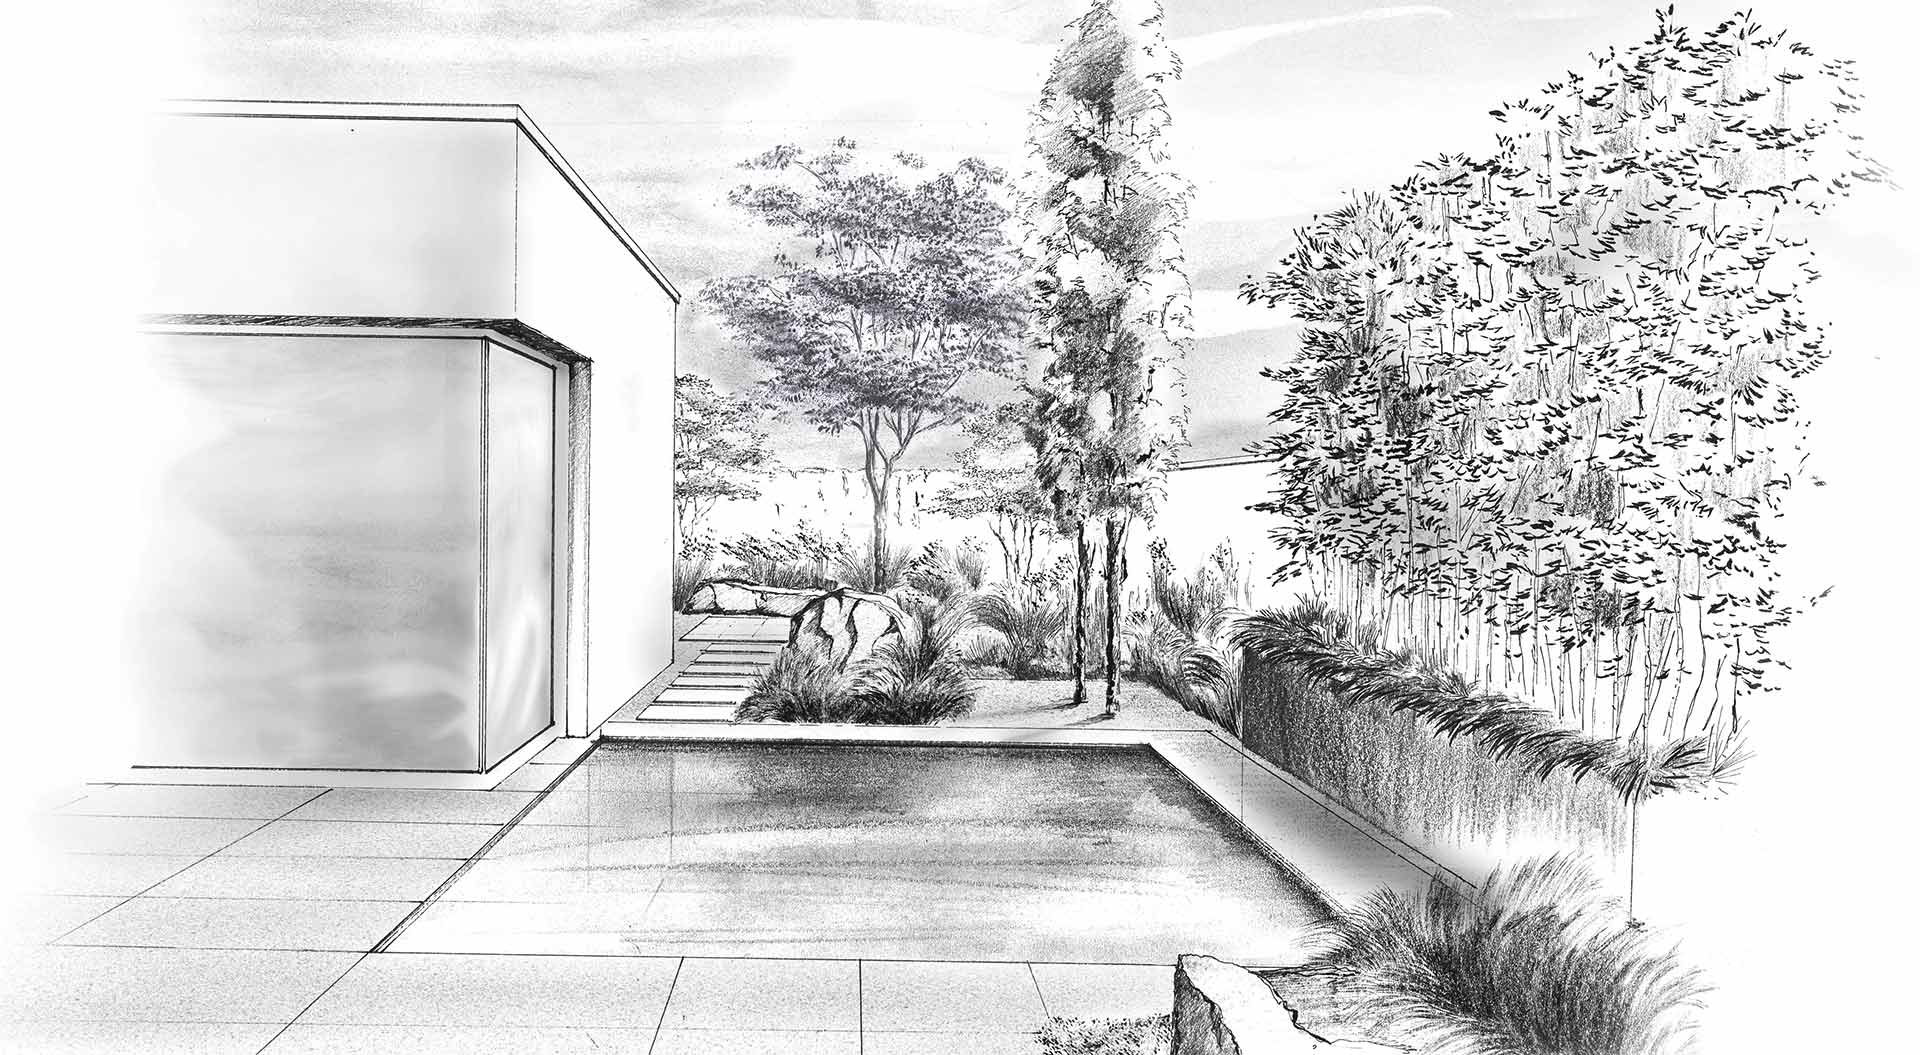 Hand-drawn sketch of a private garden with a little pool